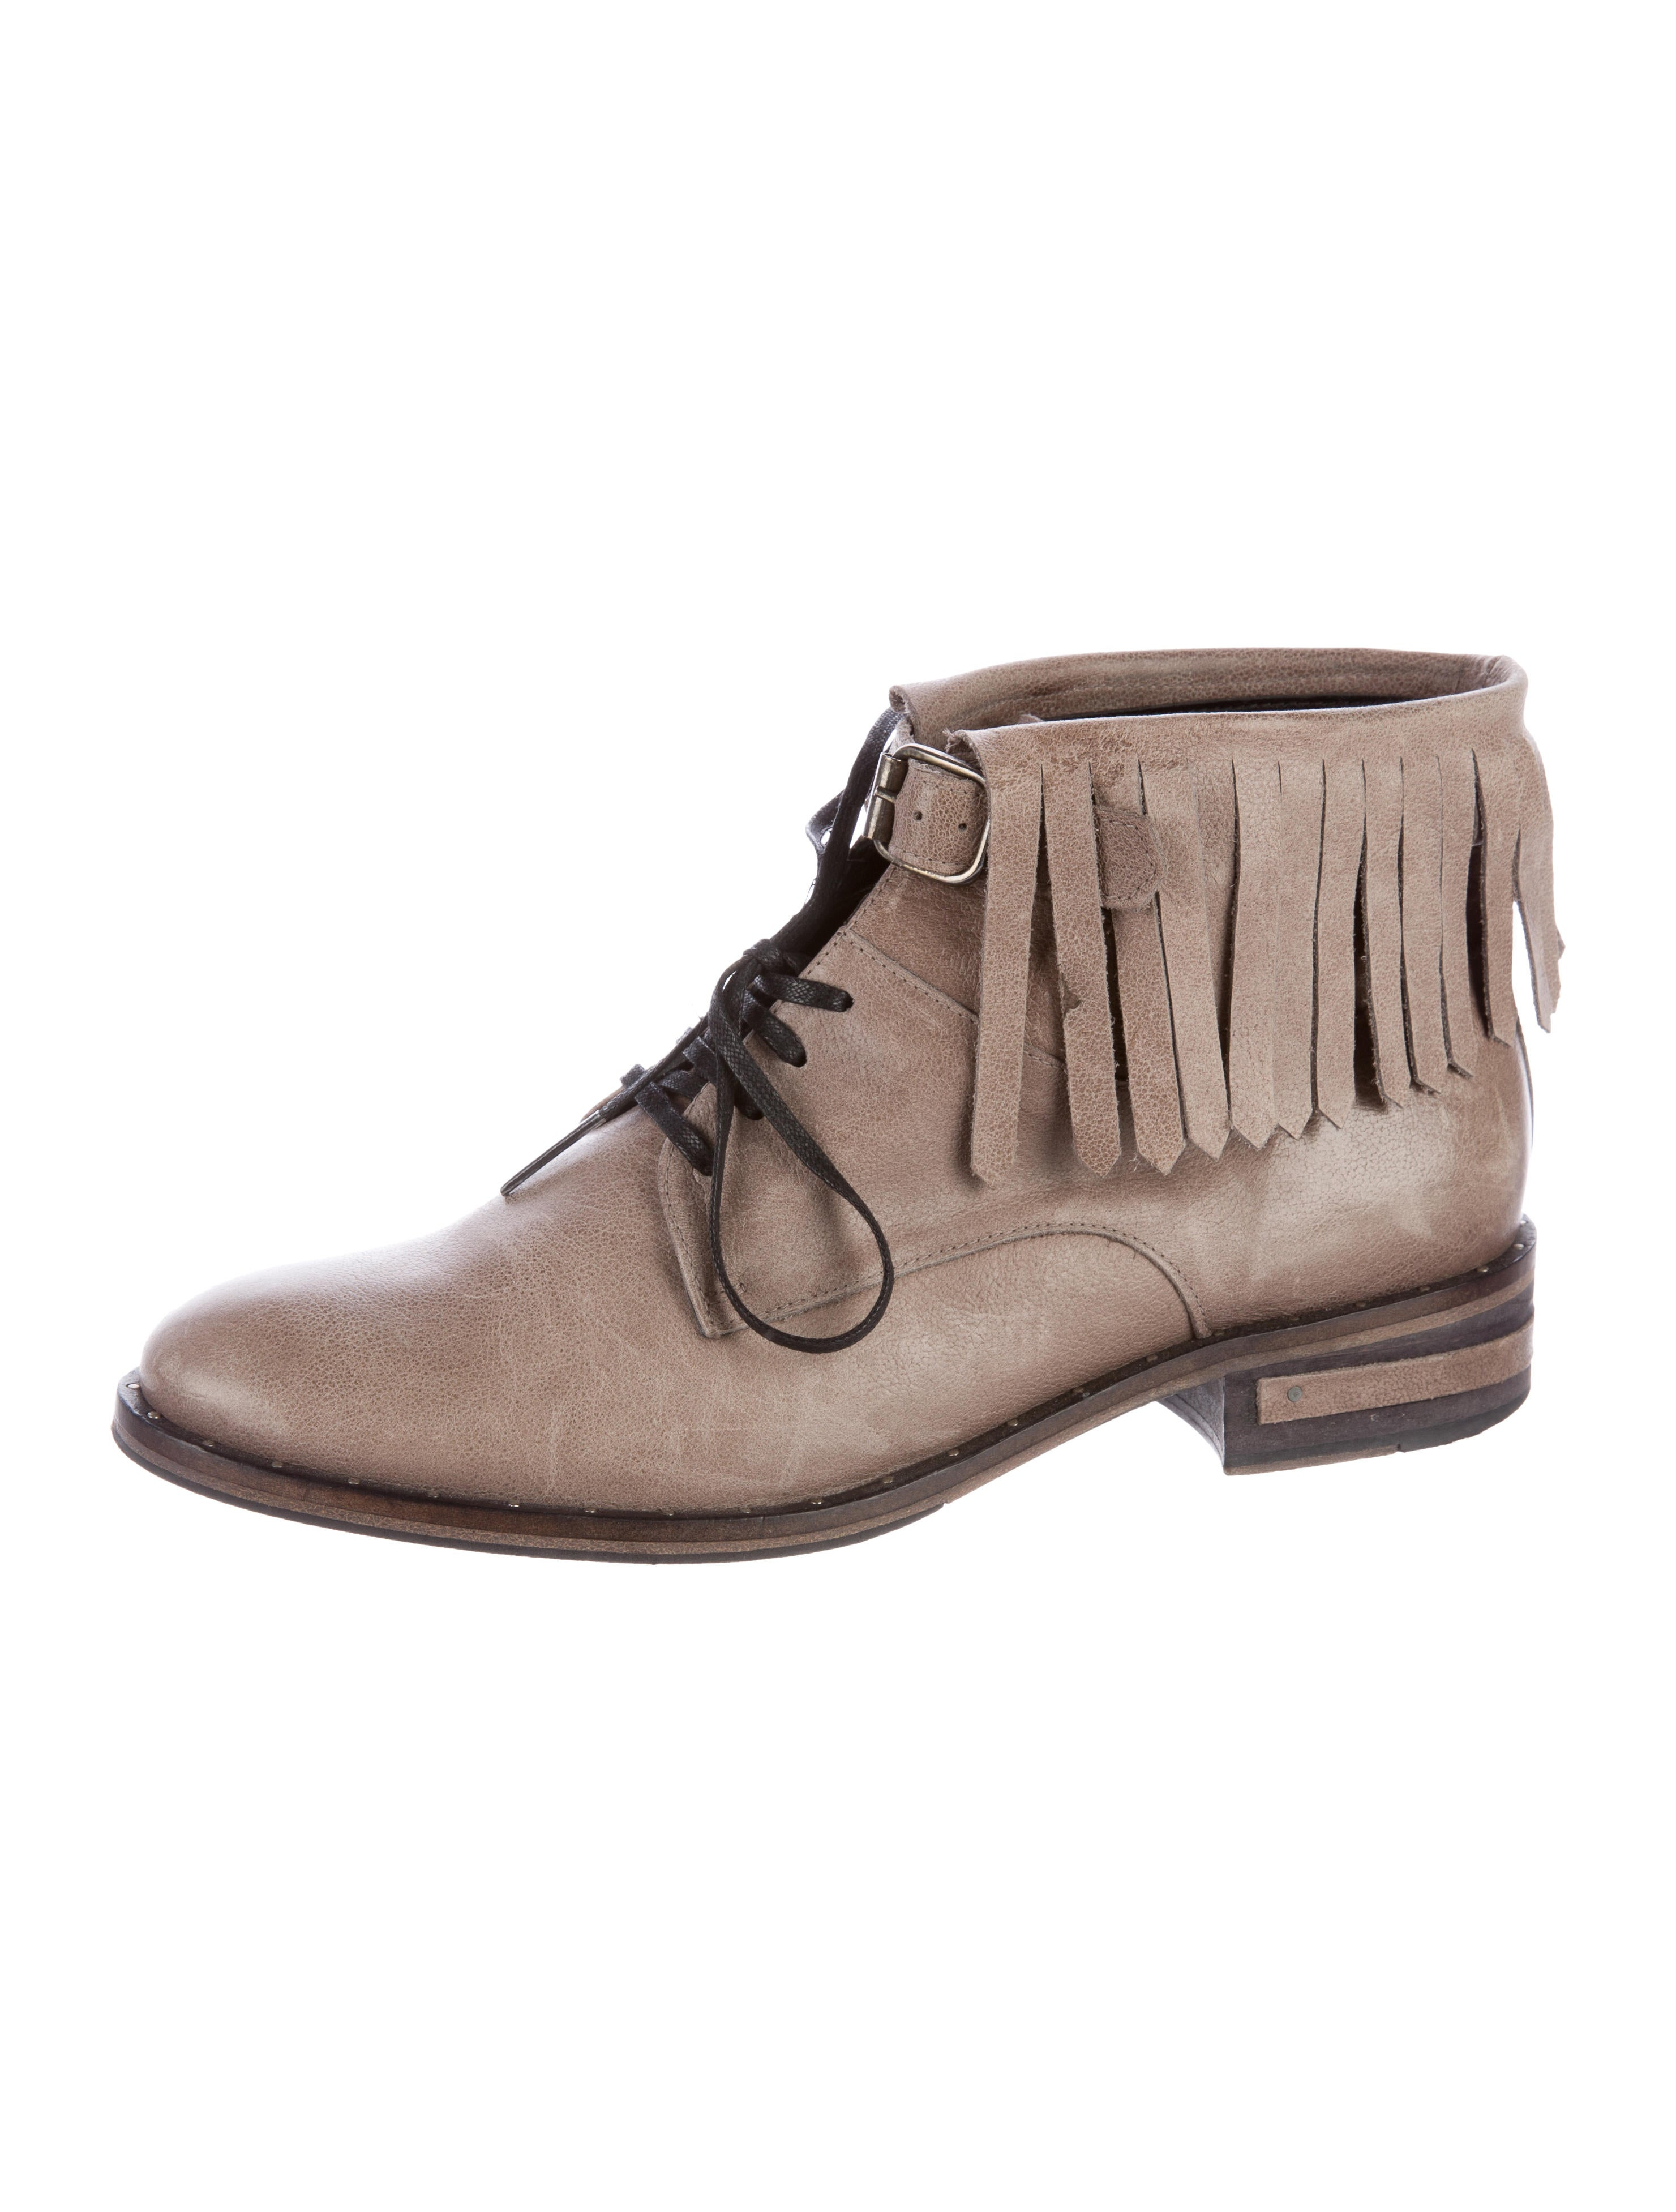 Free shipping BOTH ways on lace up ankle boots, from our vast selection of styles. Fast delivery, and 24/7/ real-person service with a smile. Click or call